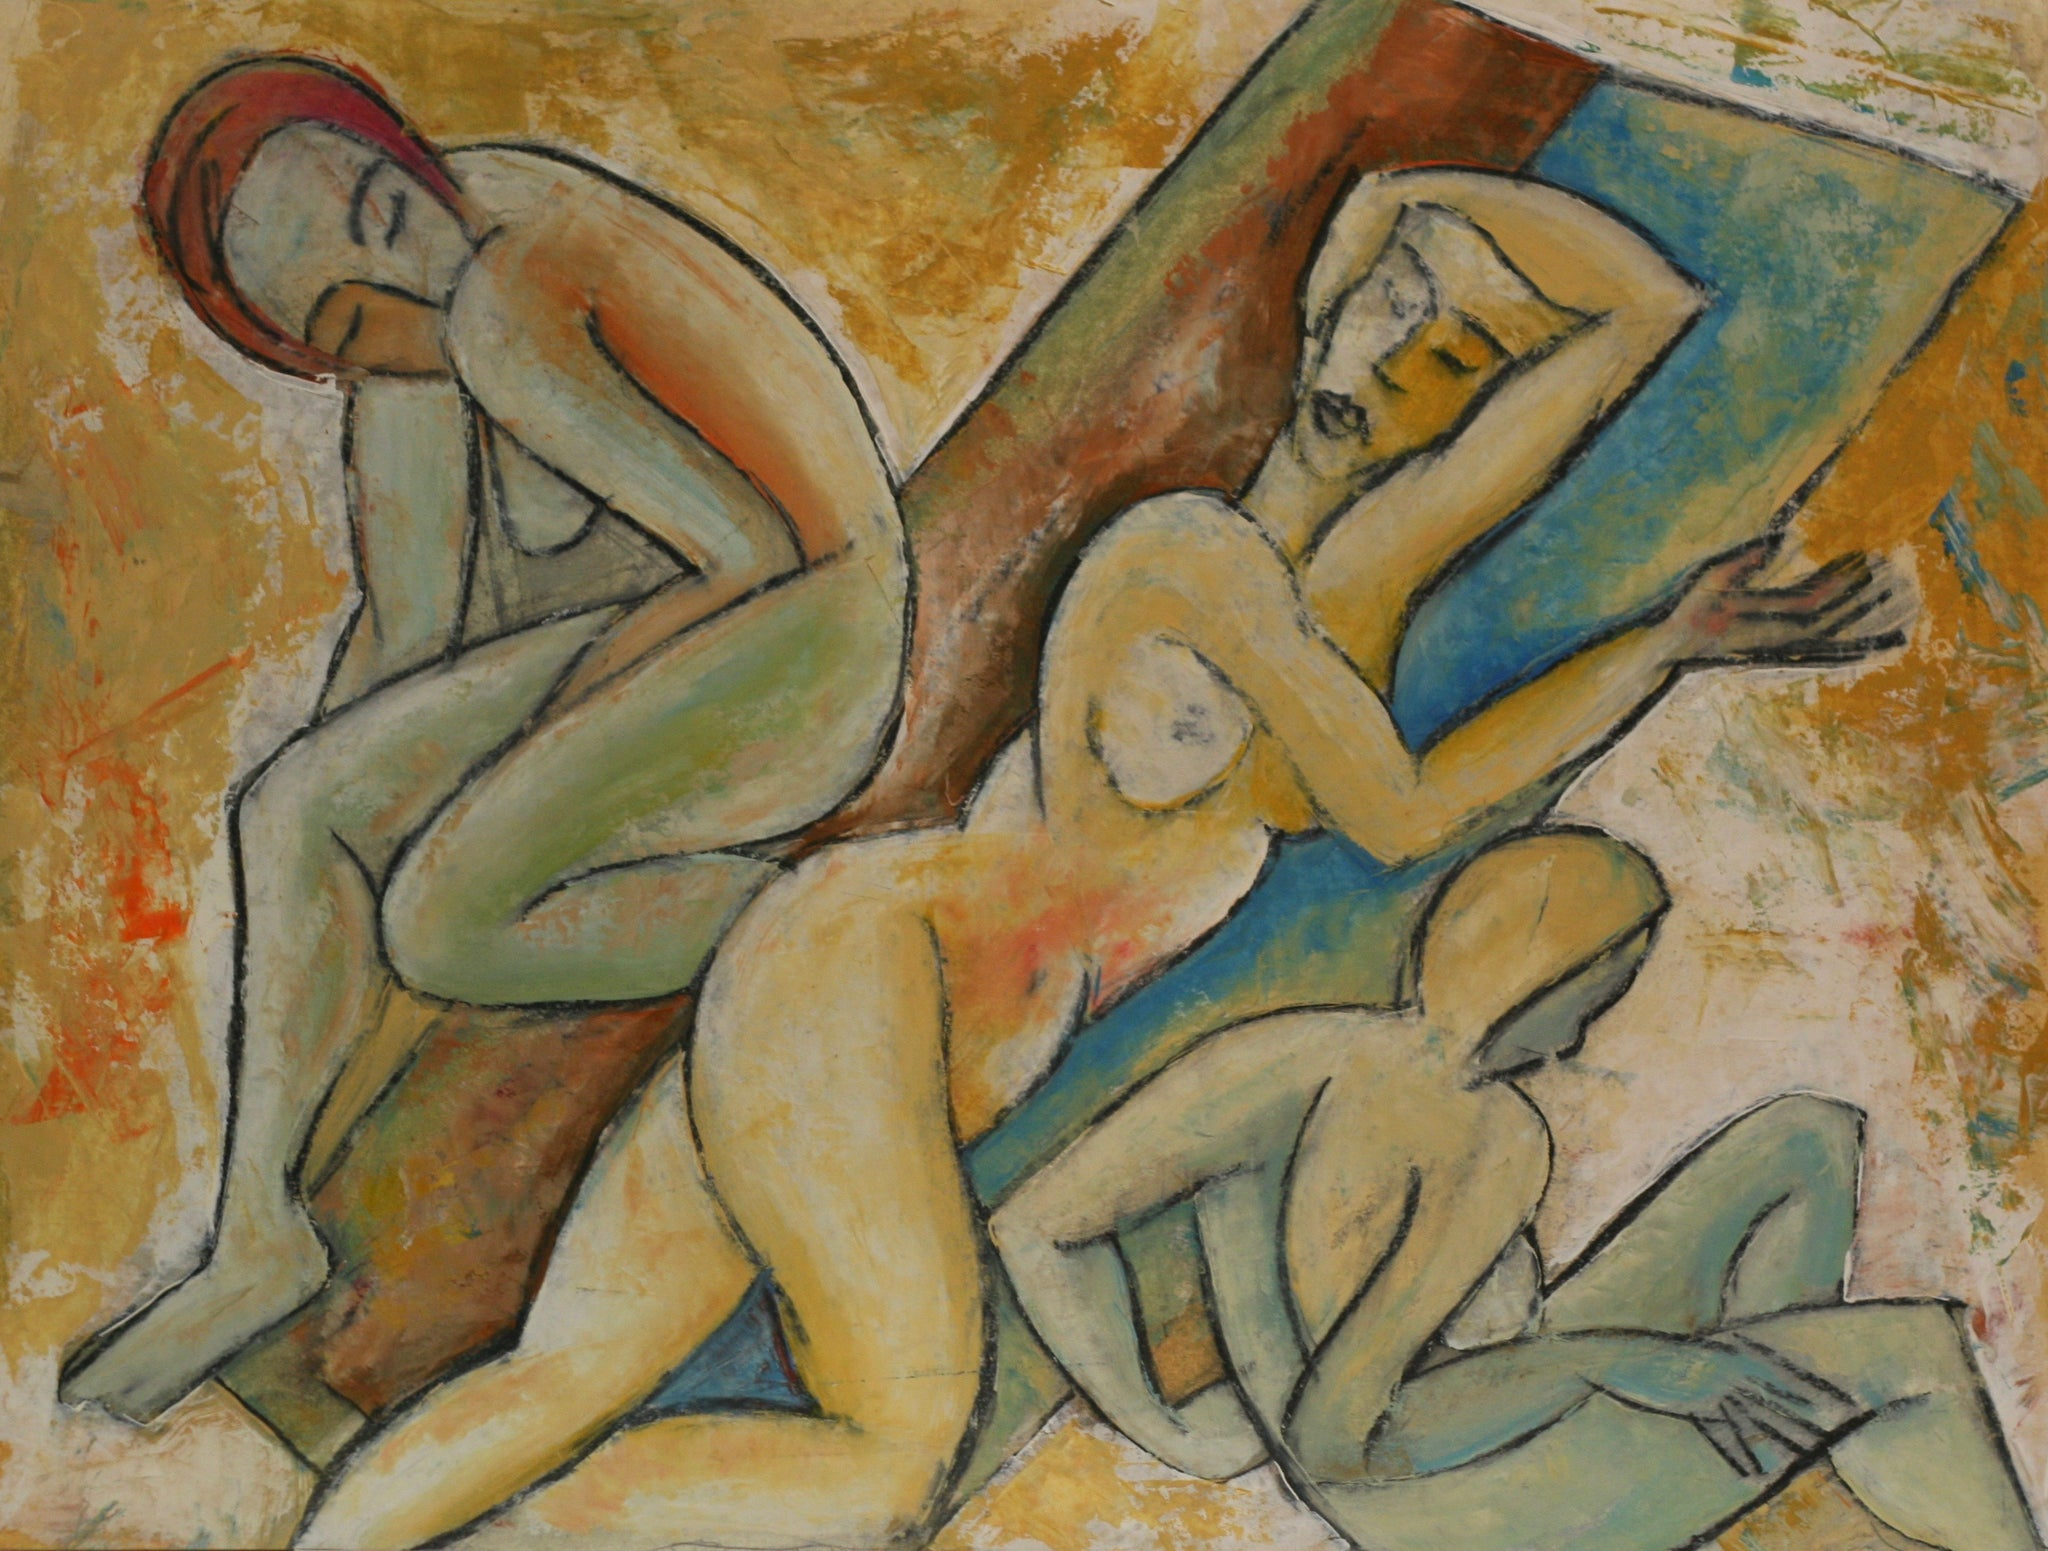 Charles Sambono - Nudes at Play